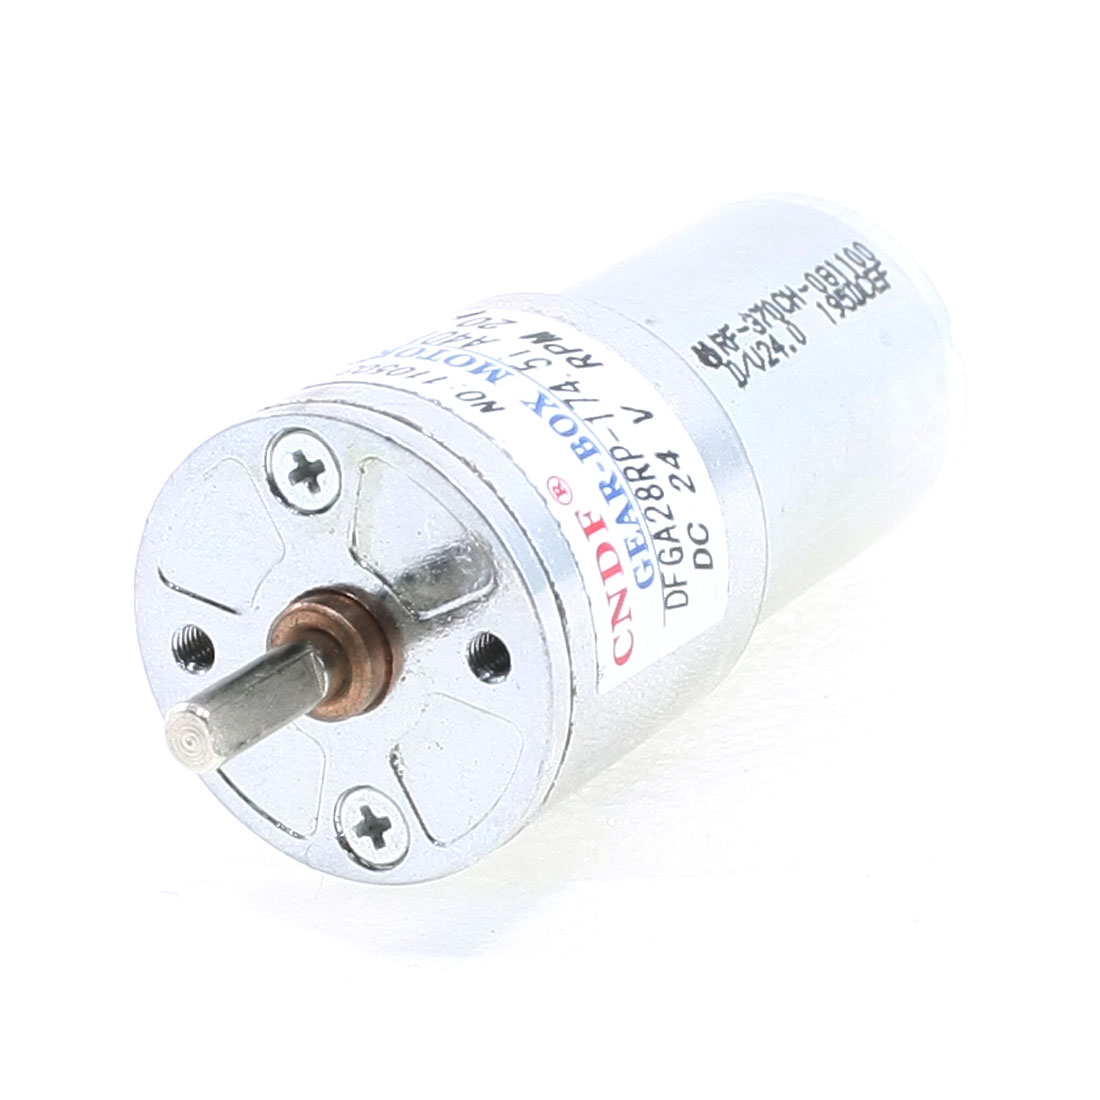 20RPM 24VDC 4mm Shaft Dia Speed Reducing Geared Motor